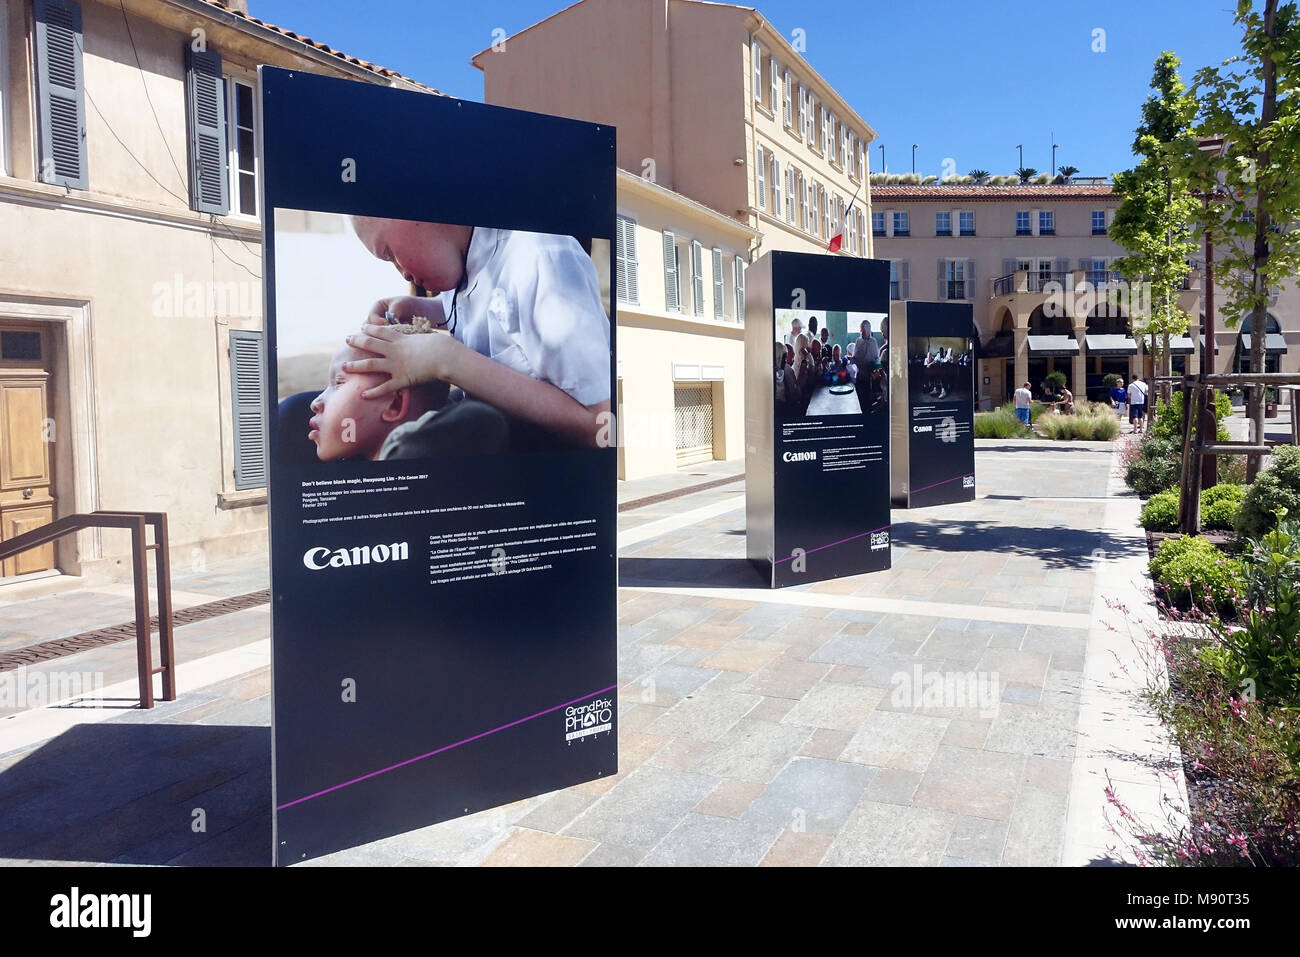 Photo Grand Prix de Saint-Tropez. Canon d'exposition. Banque D'Images